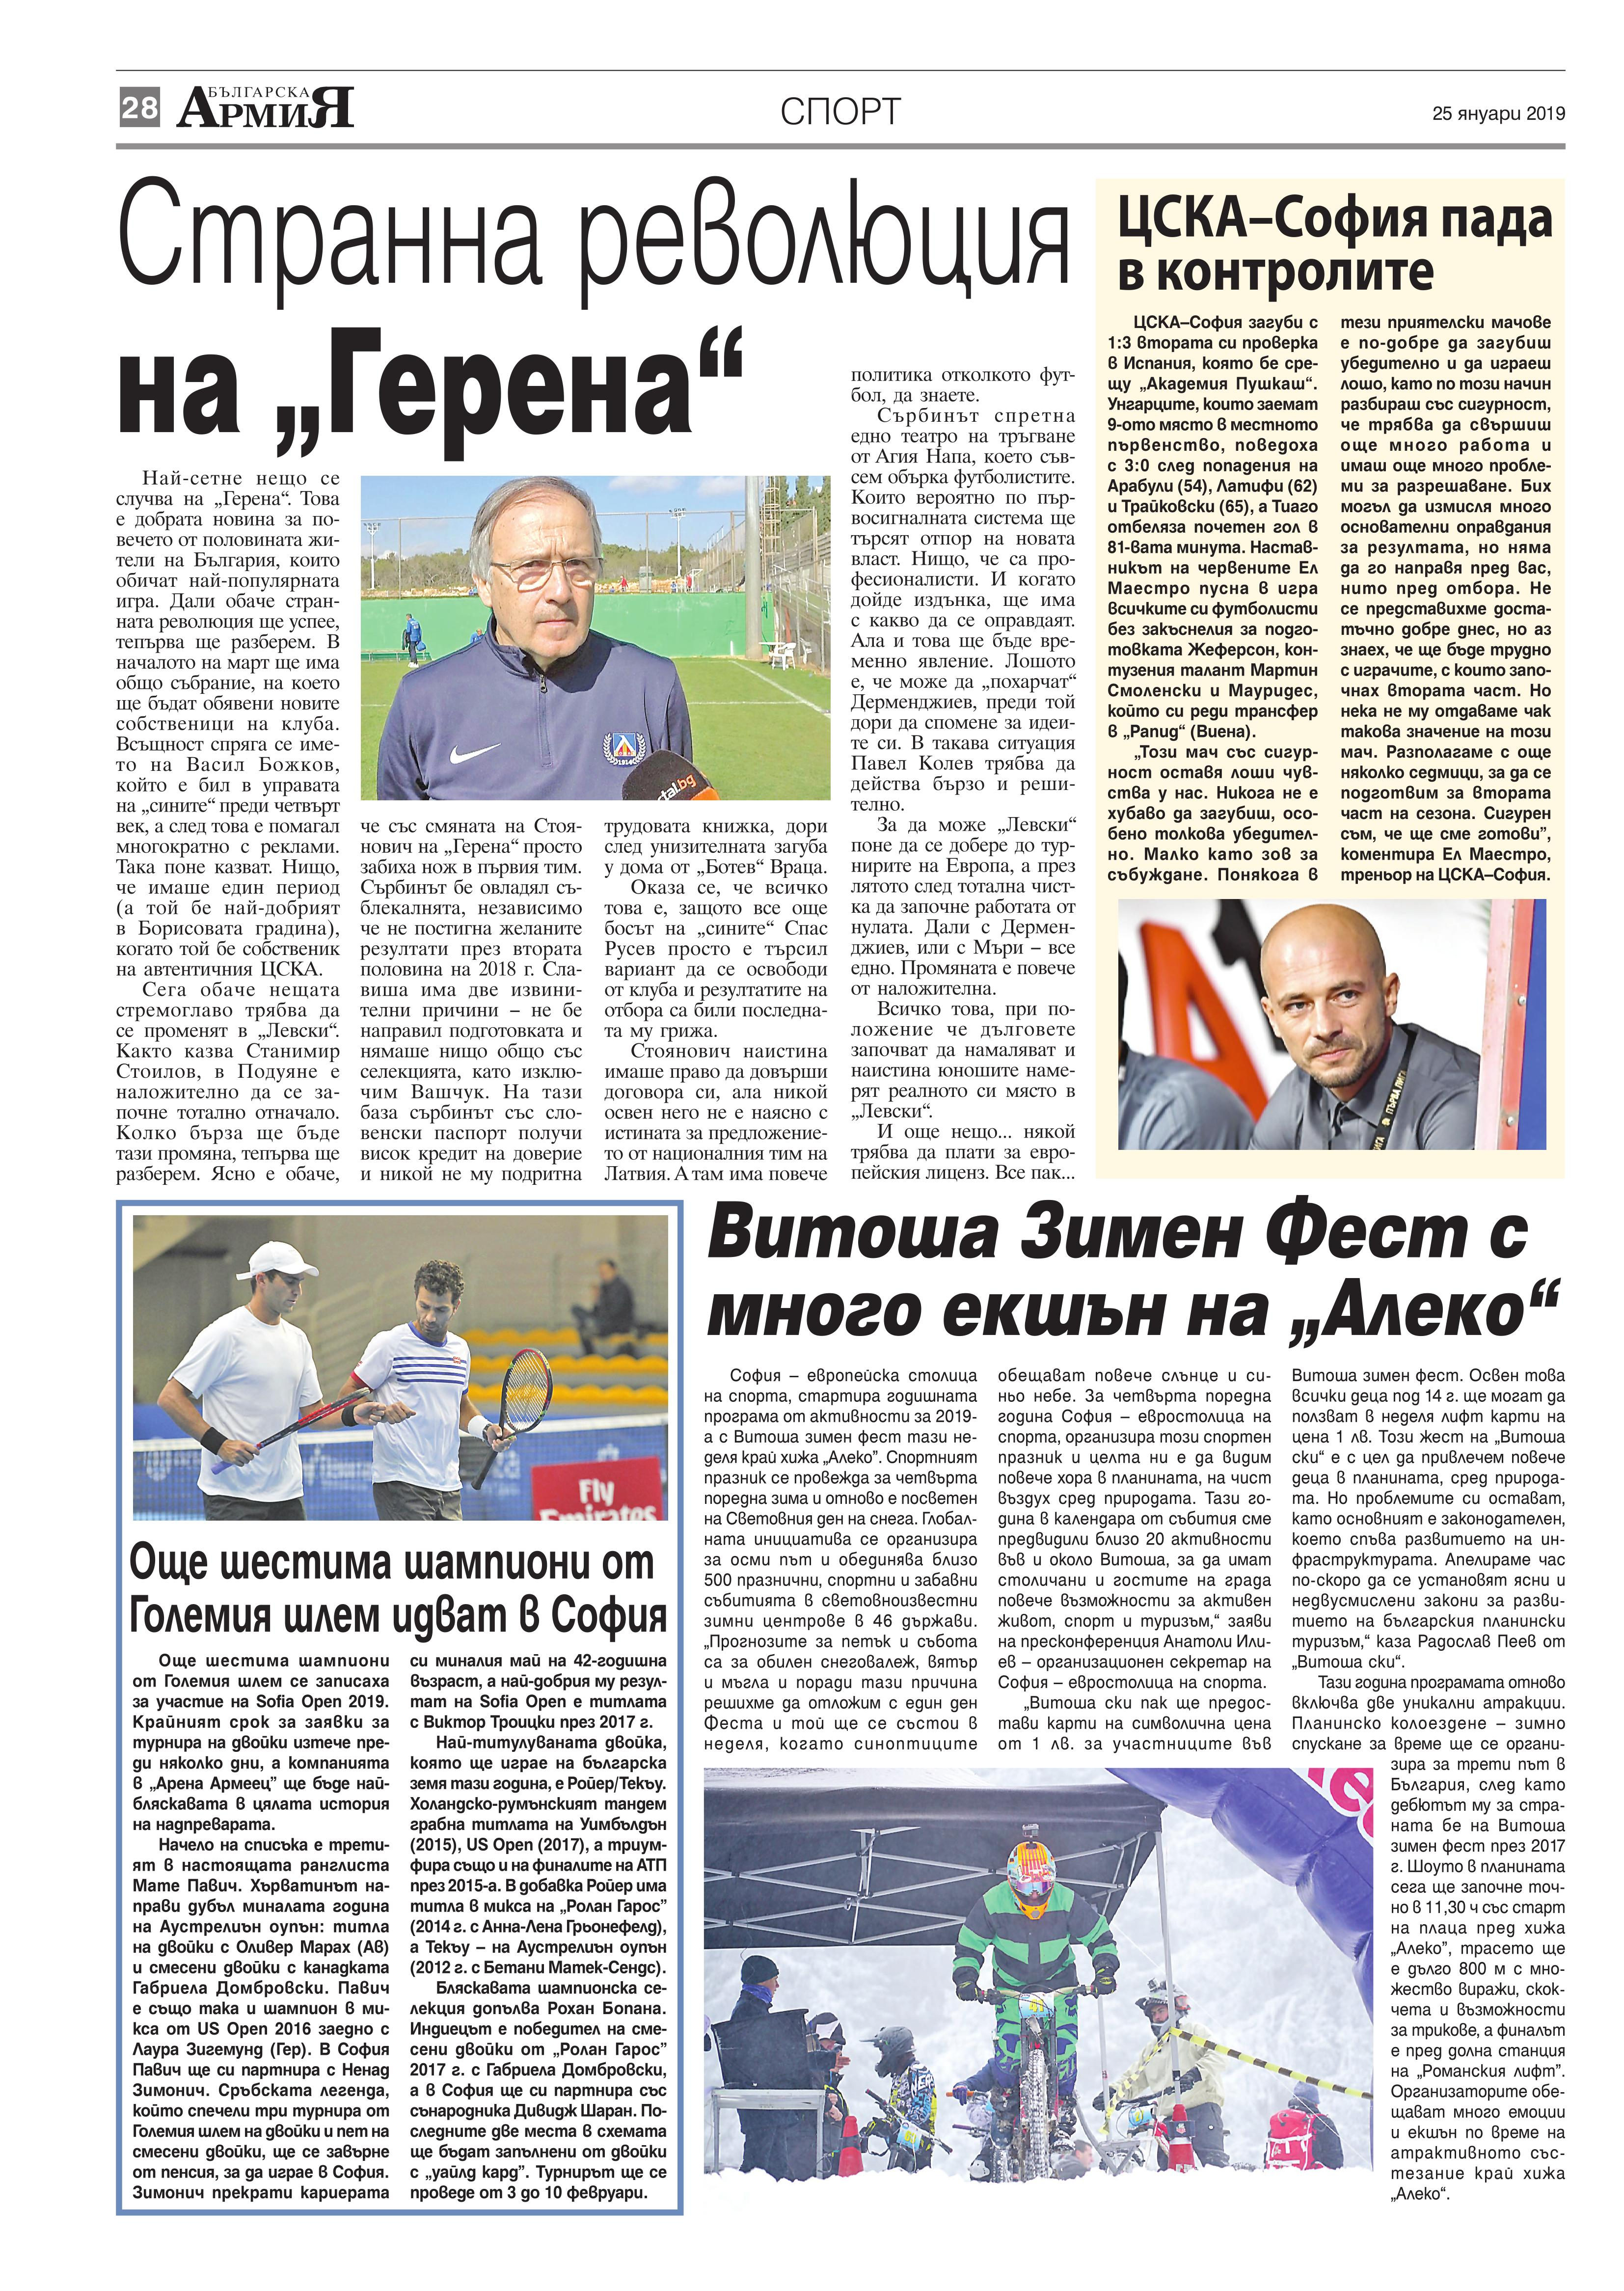 https://armymedia.bg/wp-content/uploads/2015/06/28.page1_-68.jpg